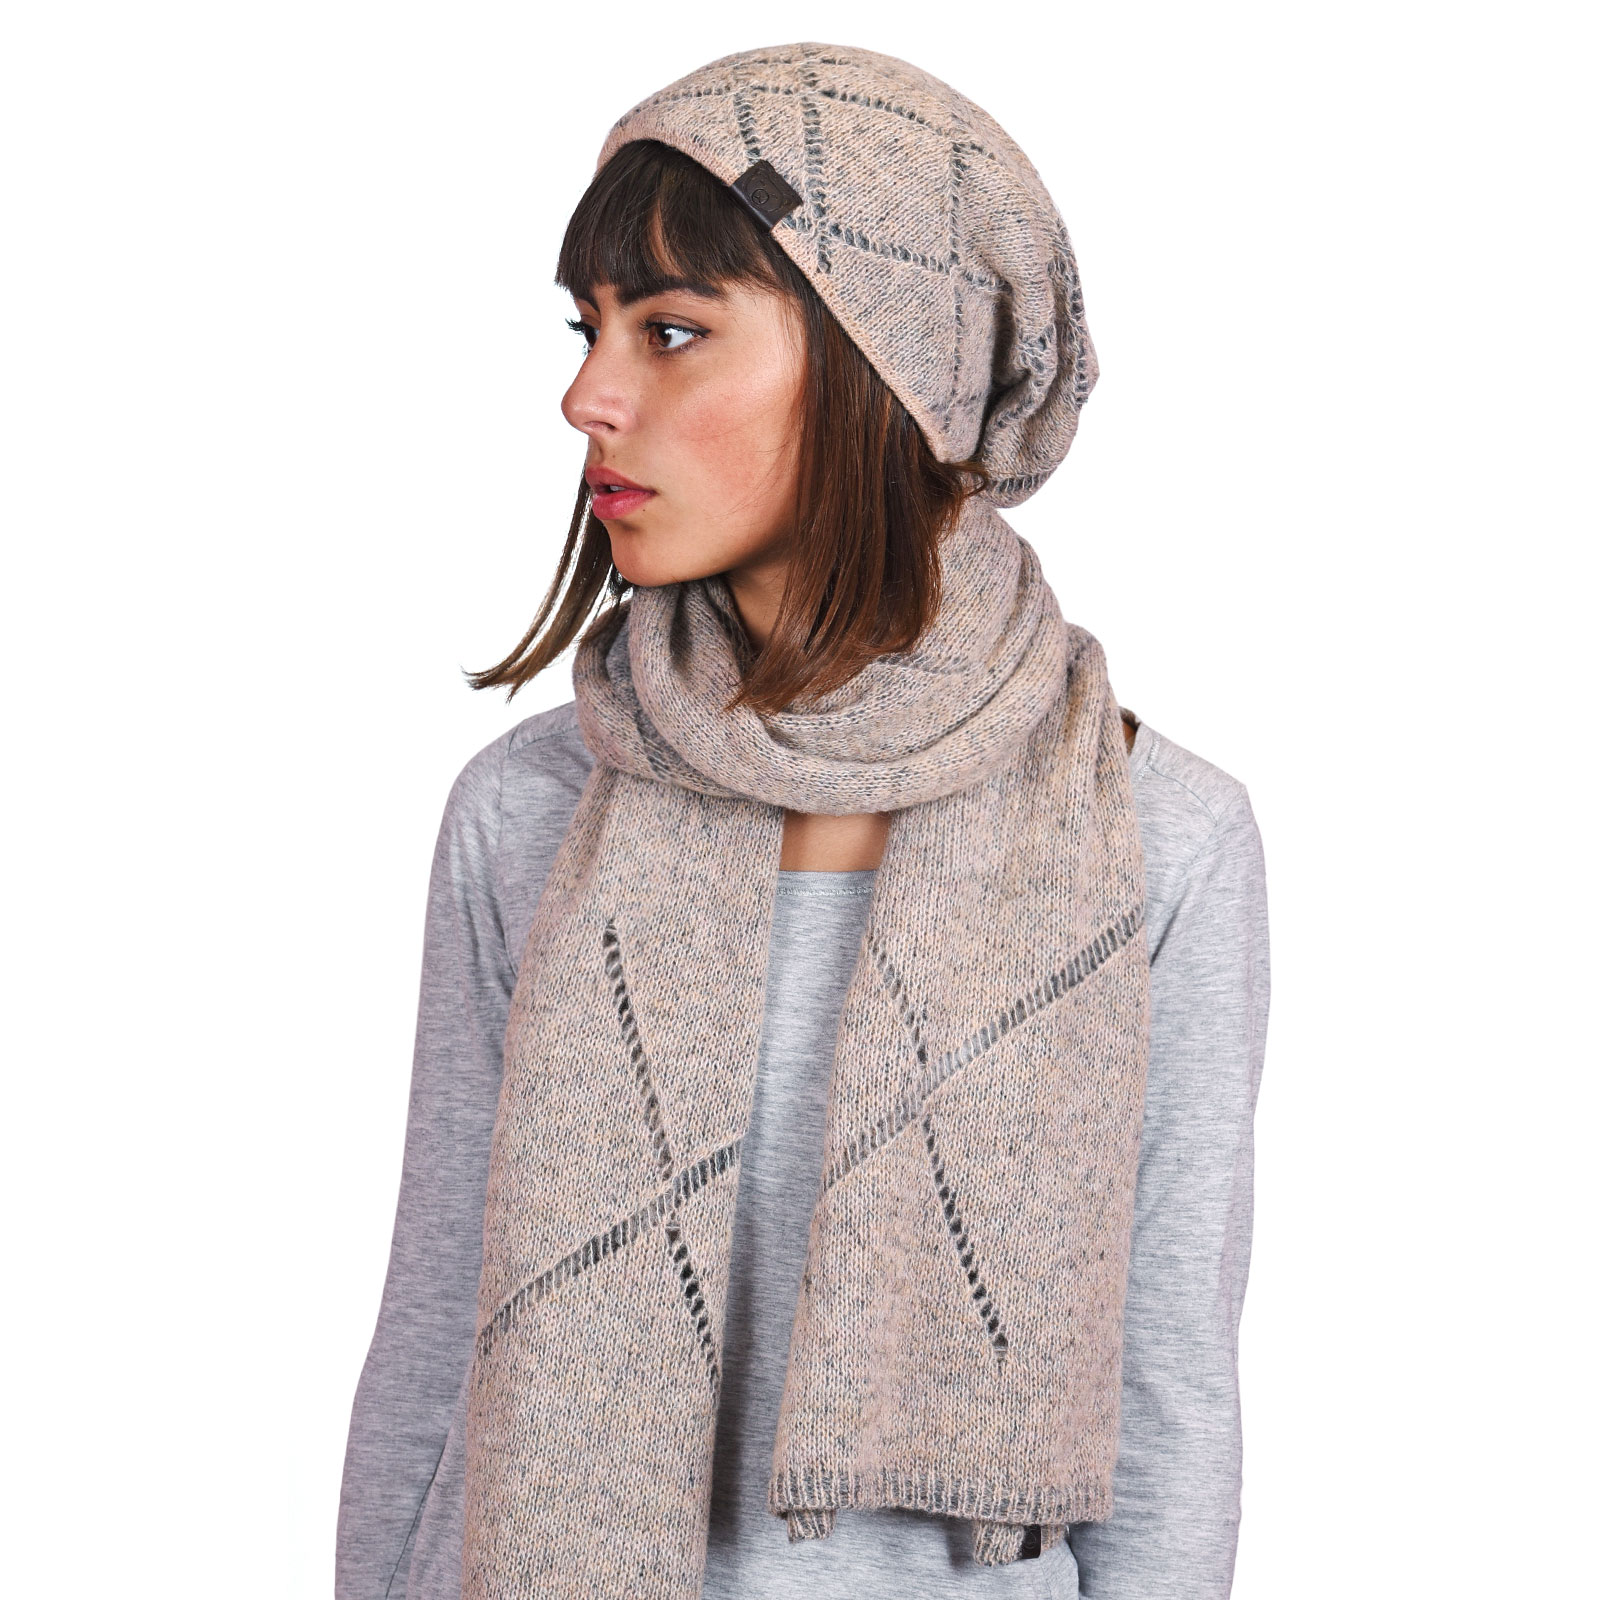 AT-04598-VF16-P-ensemble-echarpe-bonnet-beige-rose